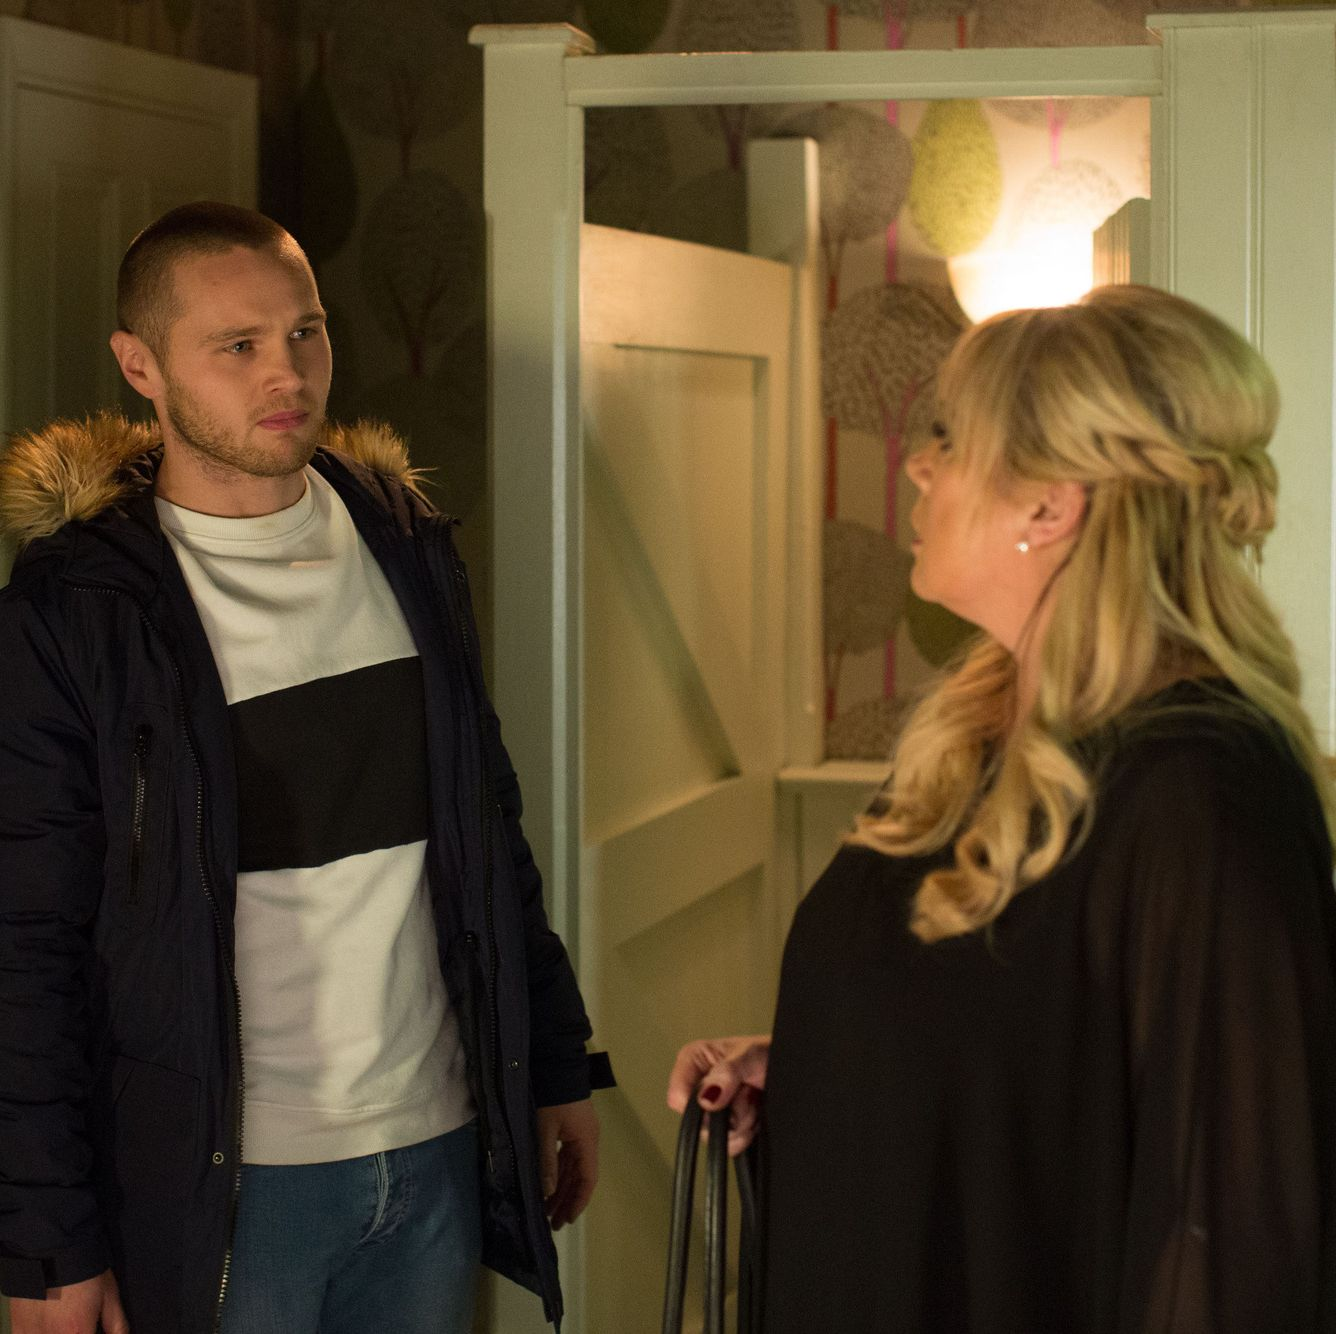 EastEnders star Lorraine Stanley predicts dramatic scenes when Sharon and Keanu's affair is revealed